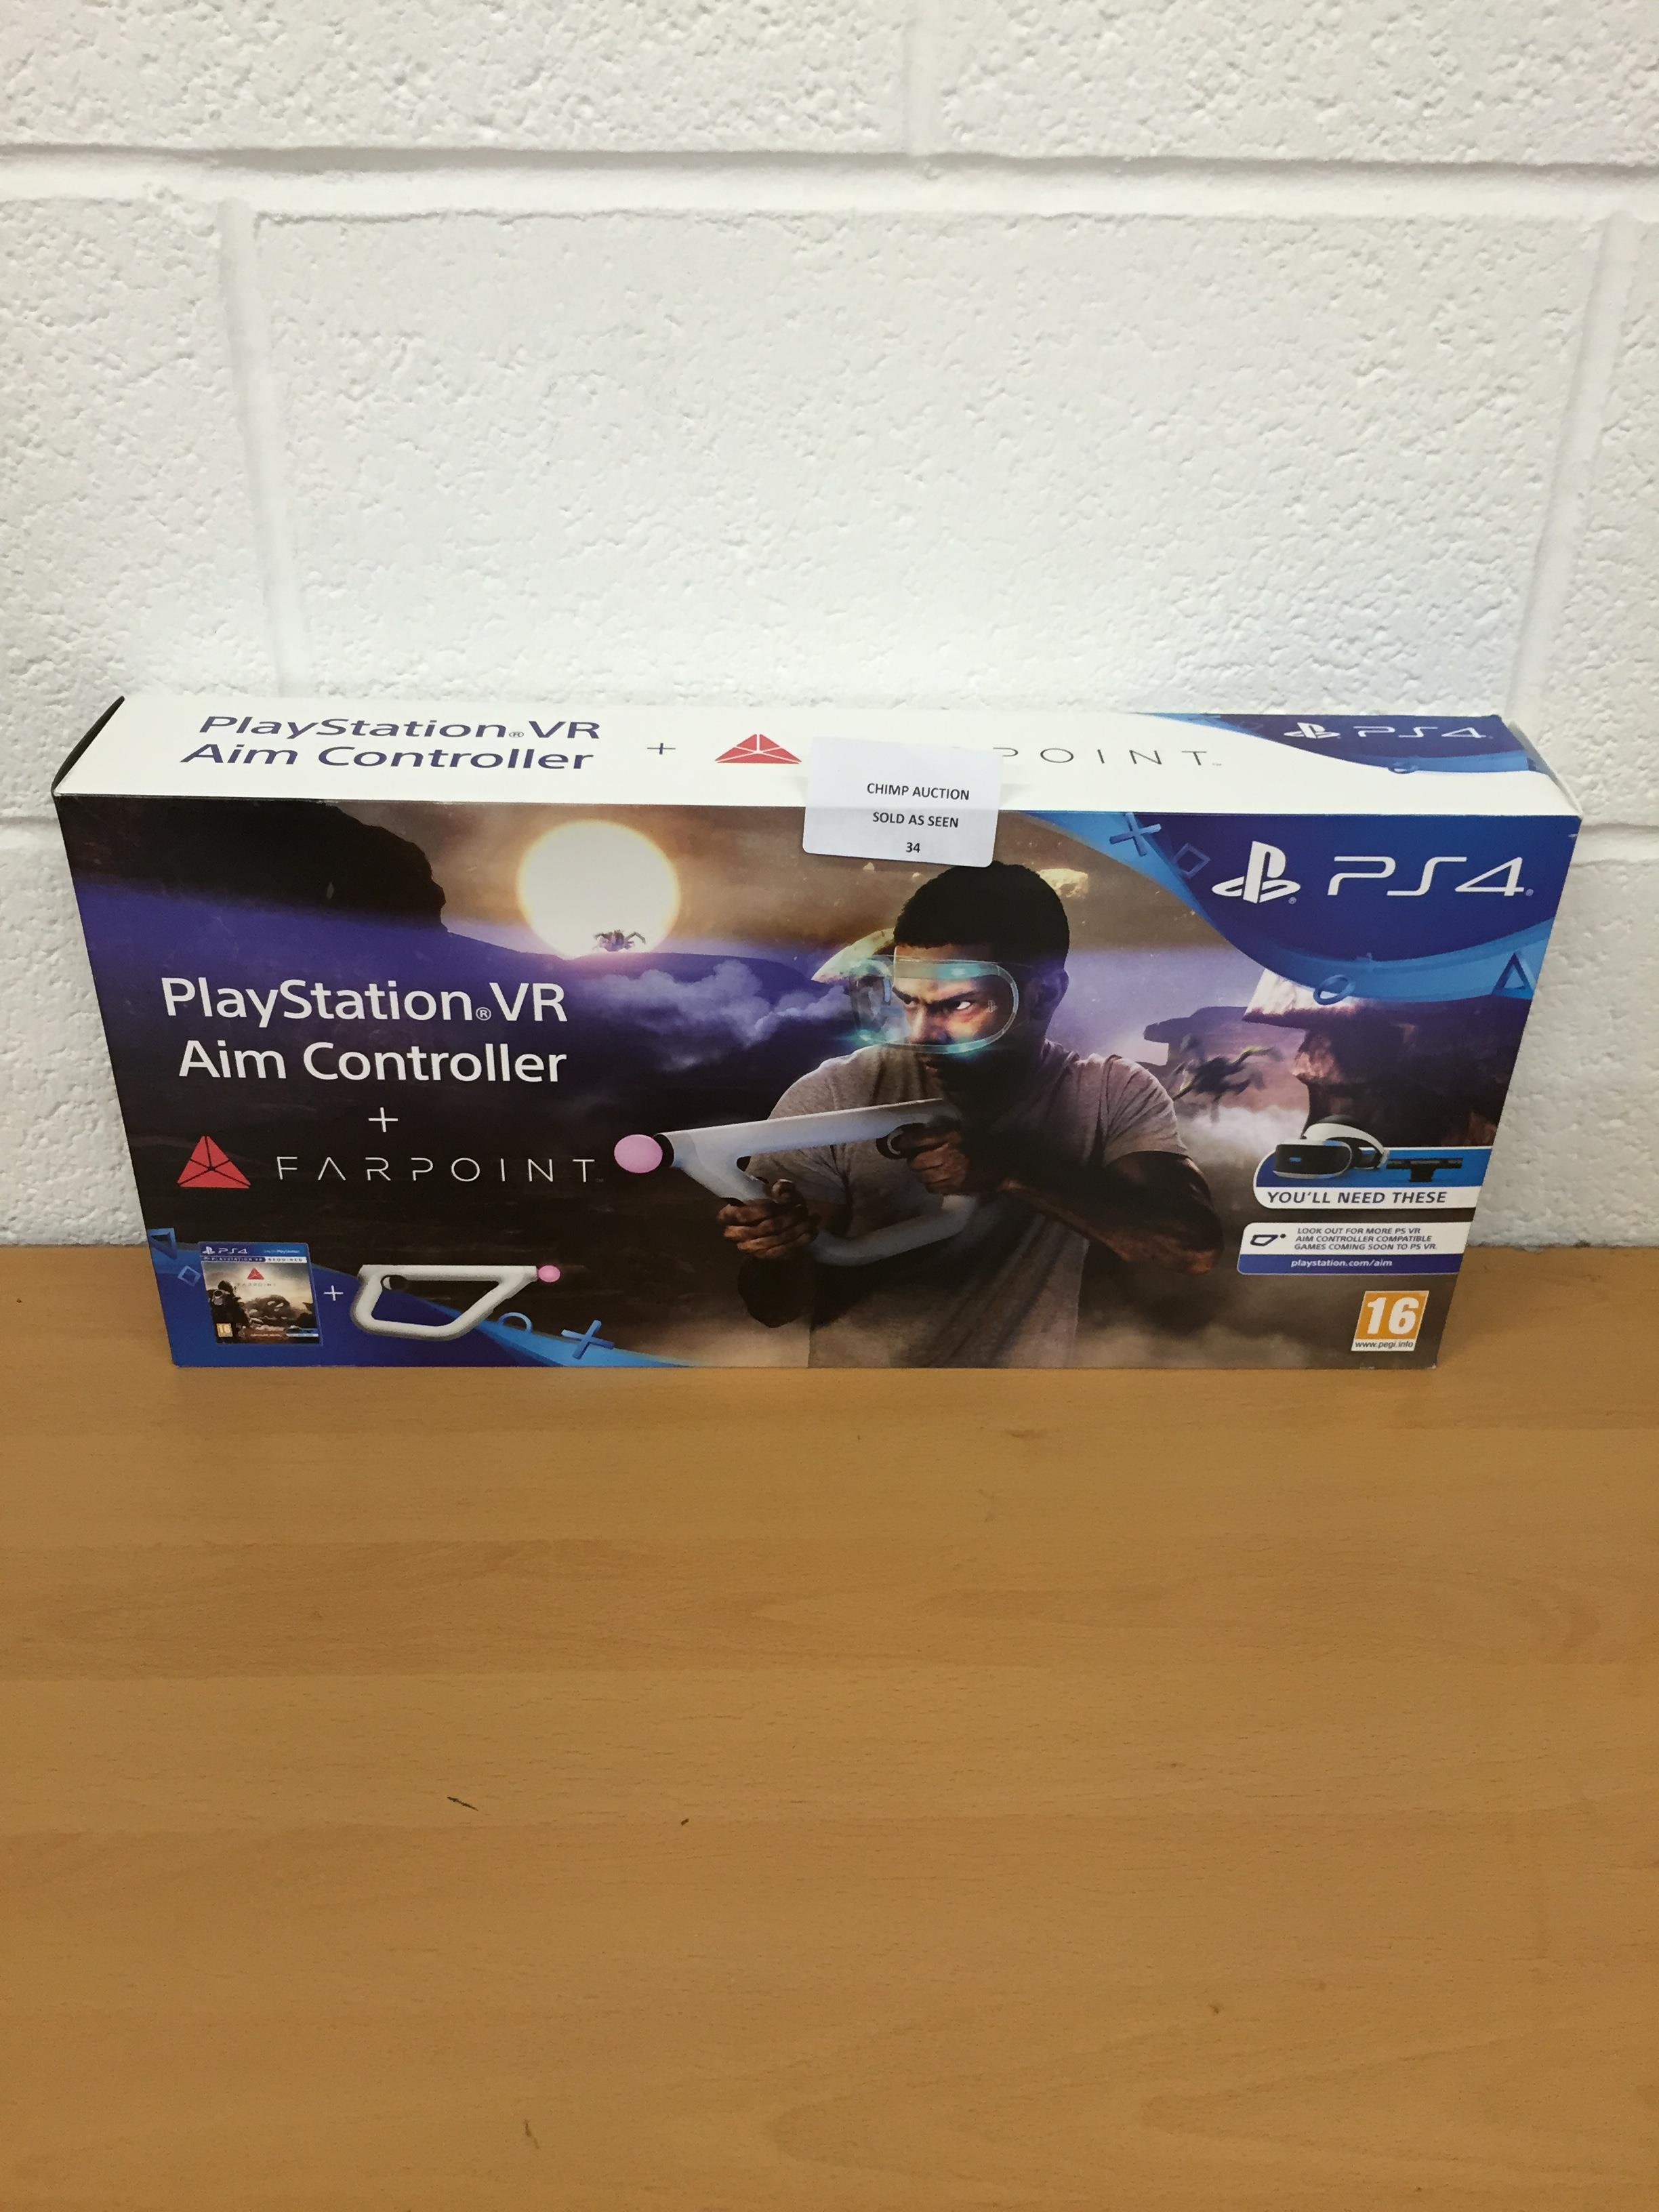 Lot 34 - FarPoint + Aim Controller Bundle (Sony PS4 VR) RRP £119.99.